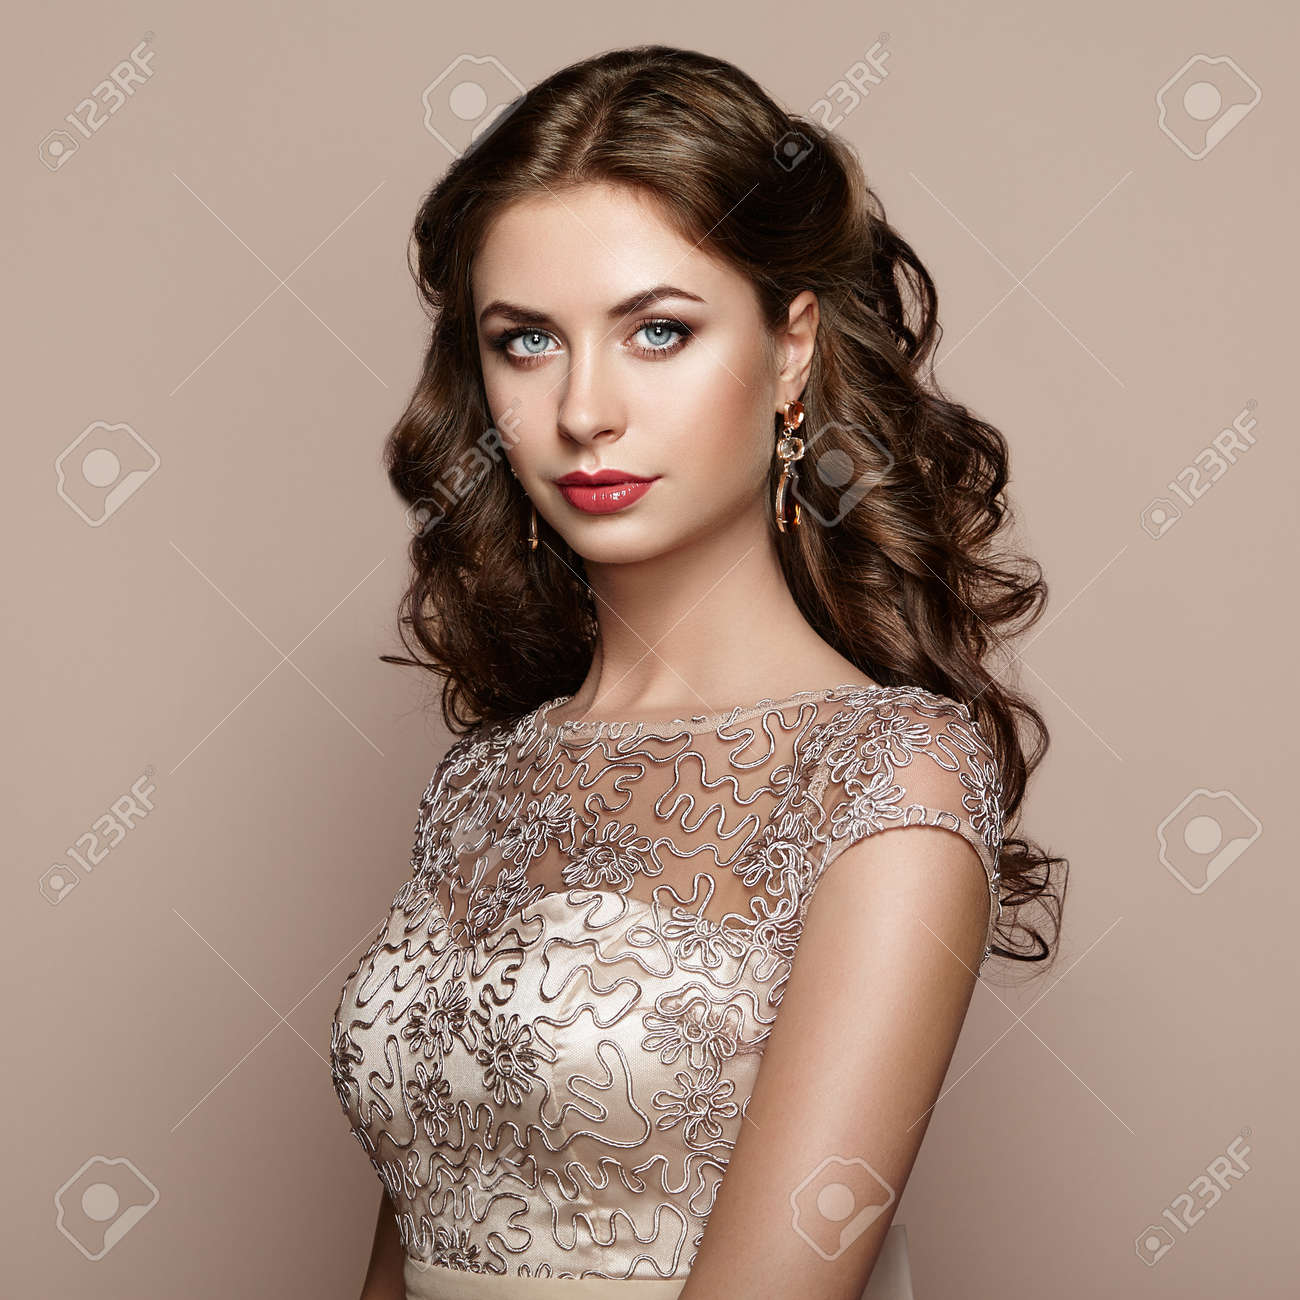 Fashion portrait of beautiful woman in elegant dress. Girl with elegant hairstyle and jewelry - 63881600